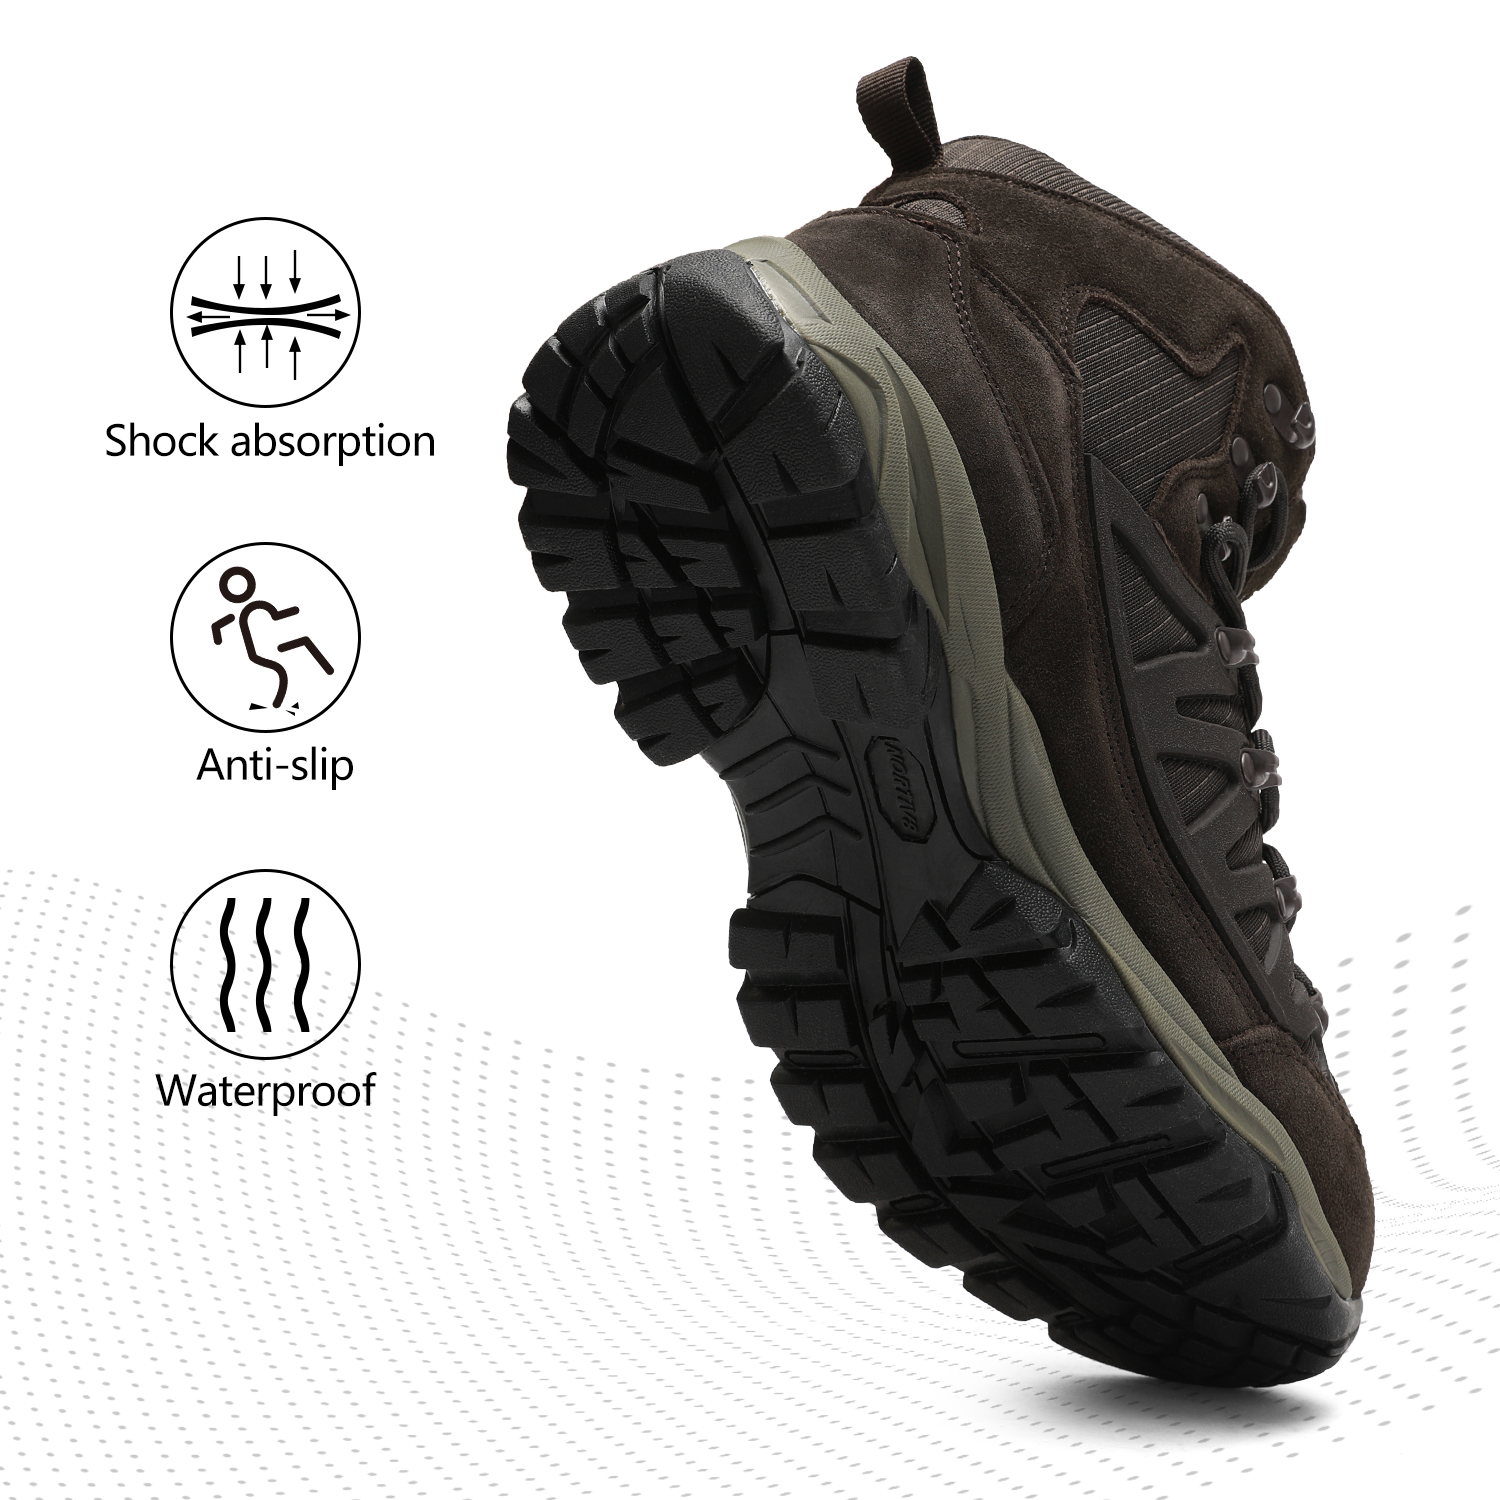 NORTIV-8-Men-039-s-Ankle-Waterproof-Hiking-Boots-Lightweight-Backpacking-Work-Shoes thumbnail 38